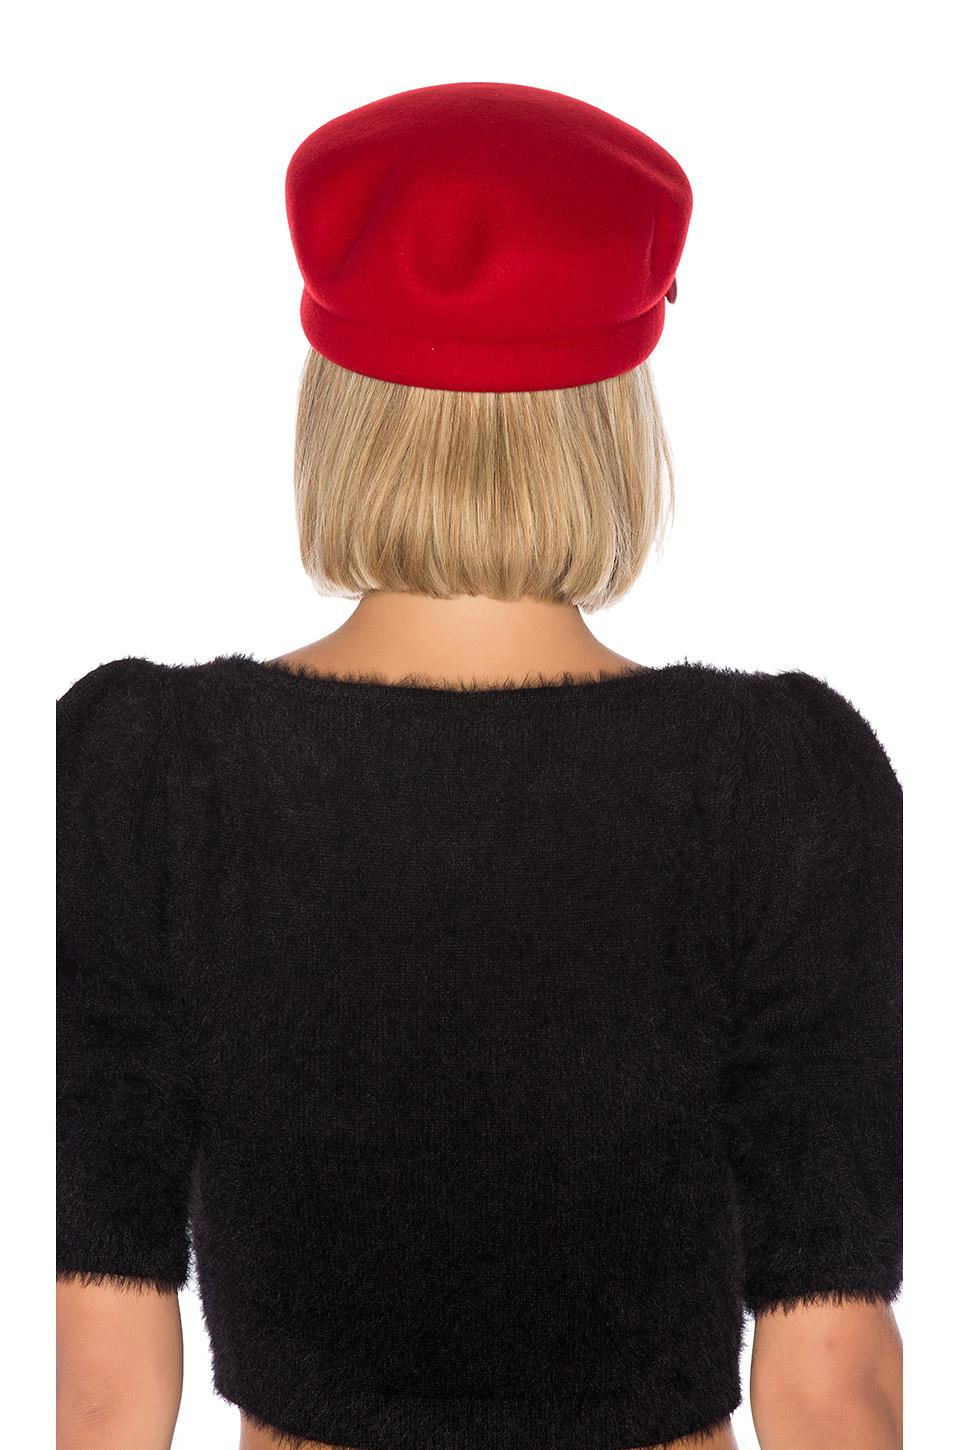 4235c528959 Lyst - Eugenia Kim Sabrina Hat in Red - Save 44.72727272727273%